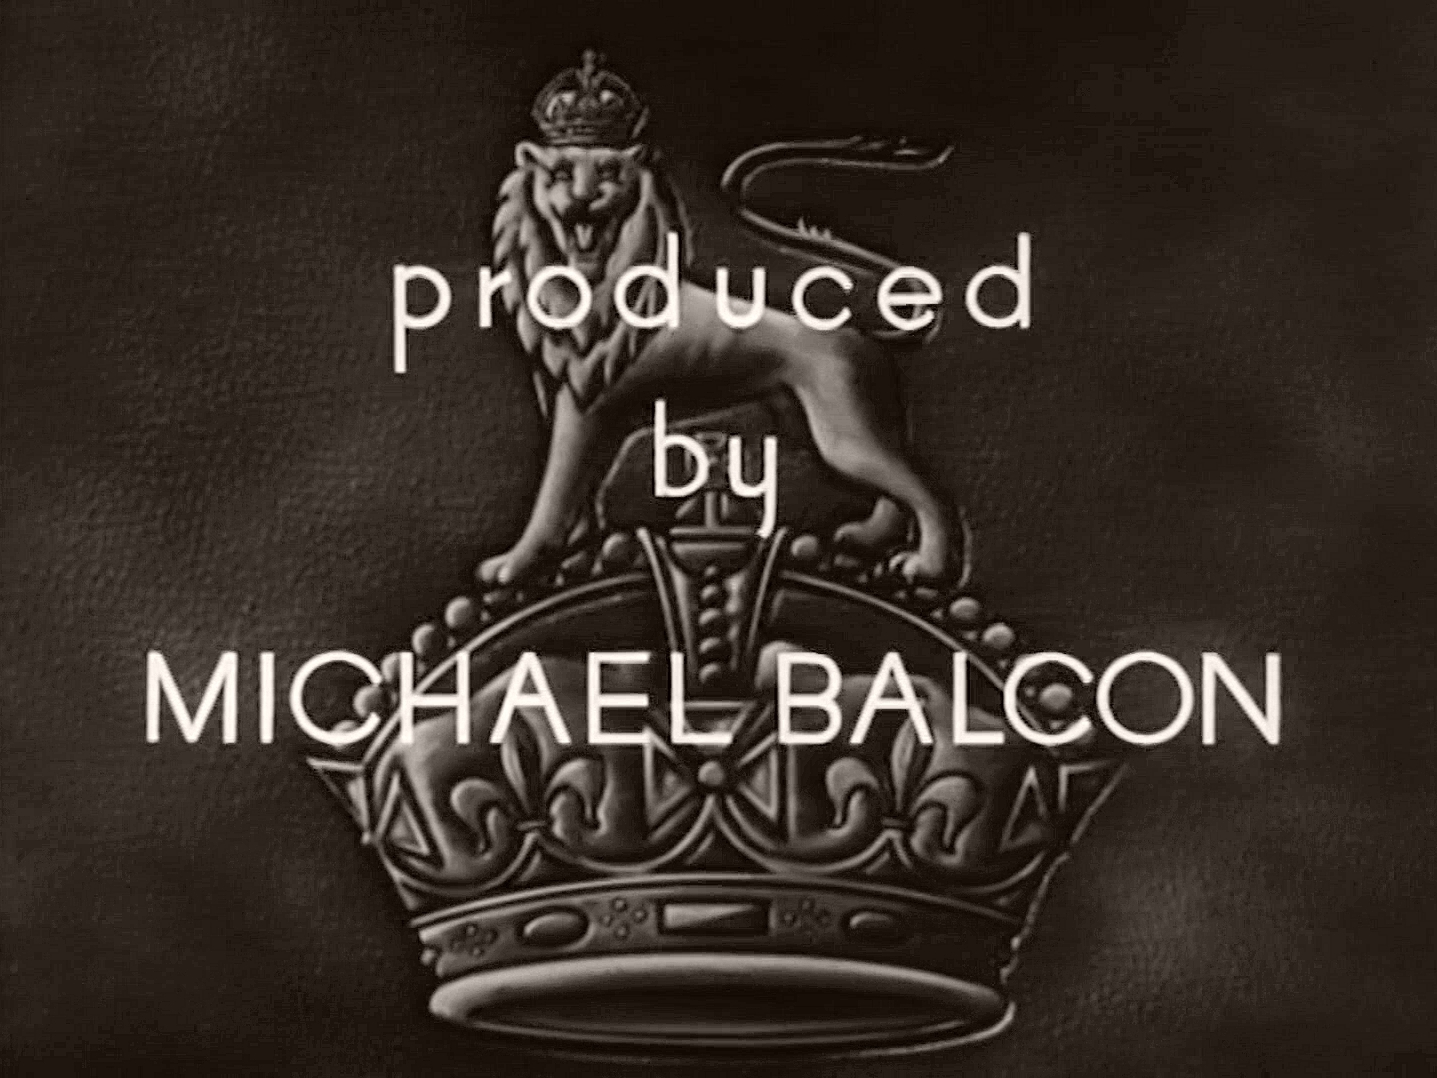 Main title from The Next of Kin (1942) (9). Produced by Michael Balcon